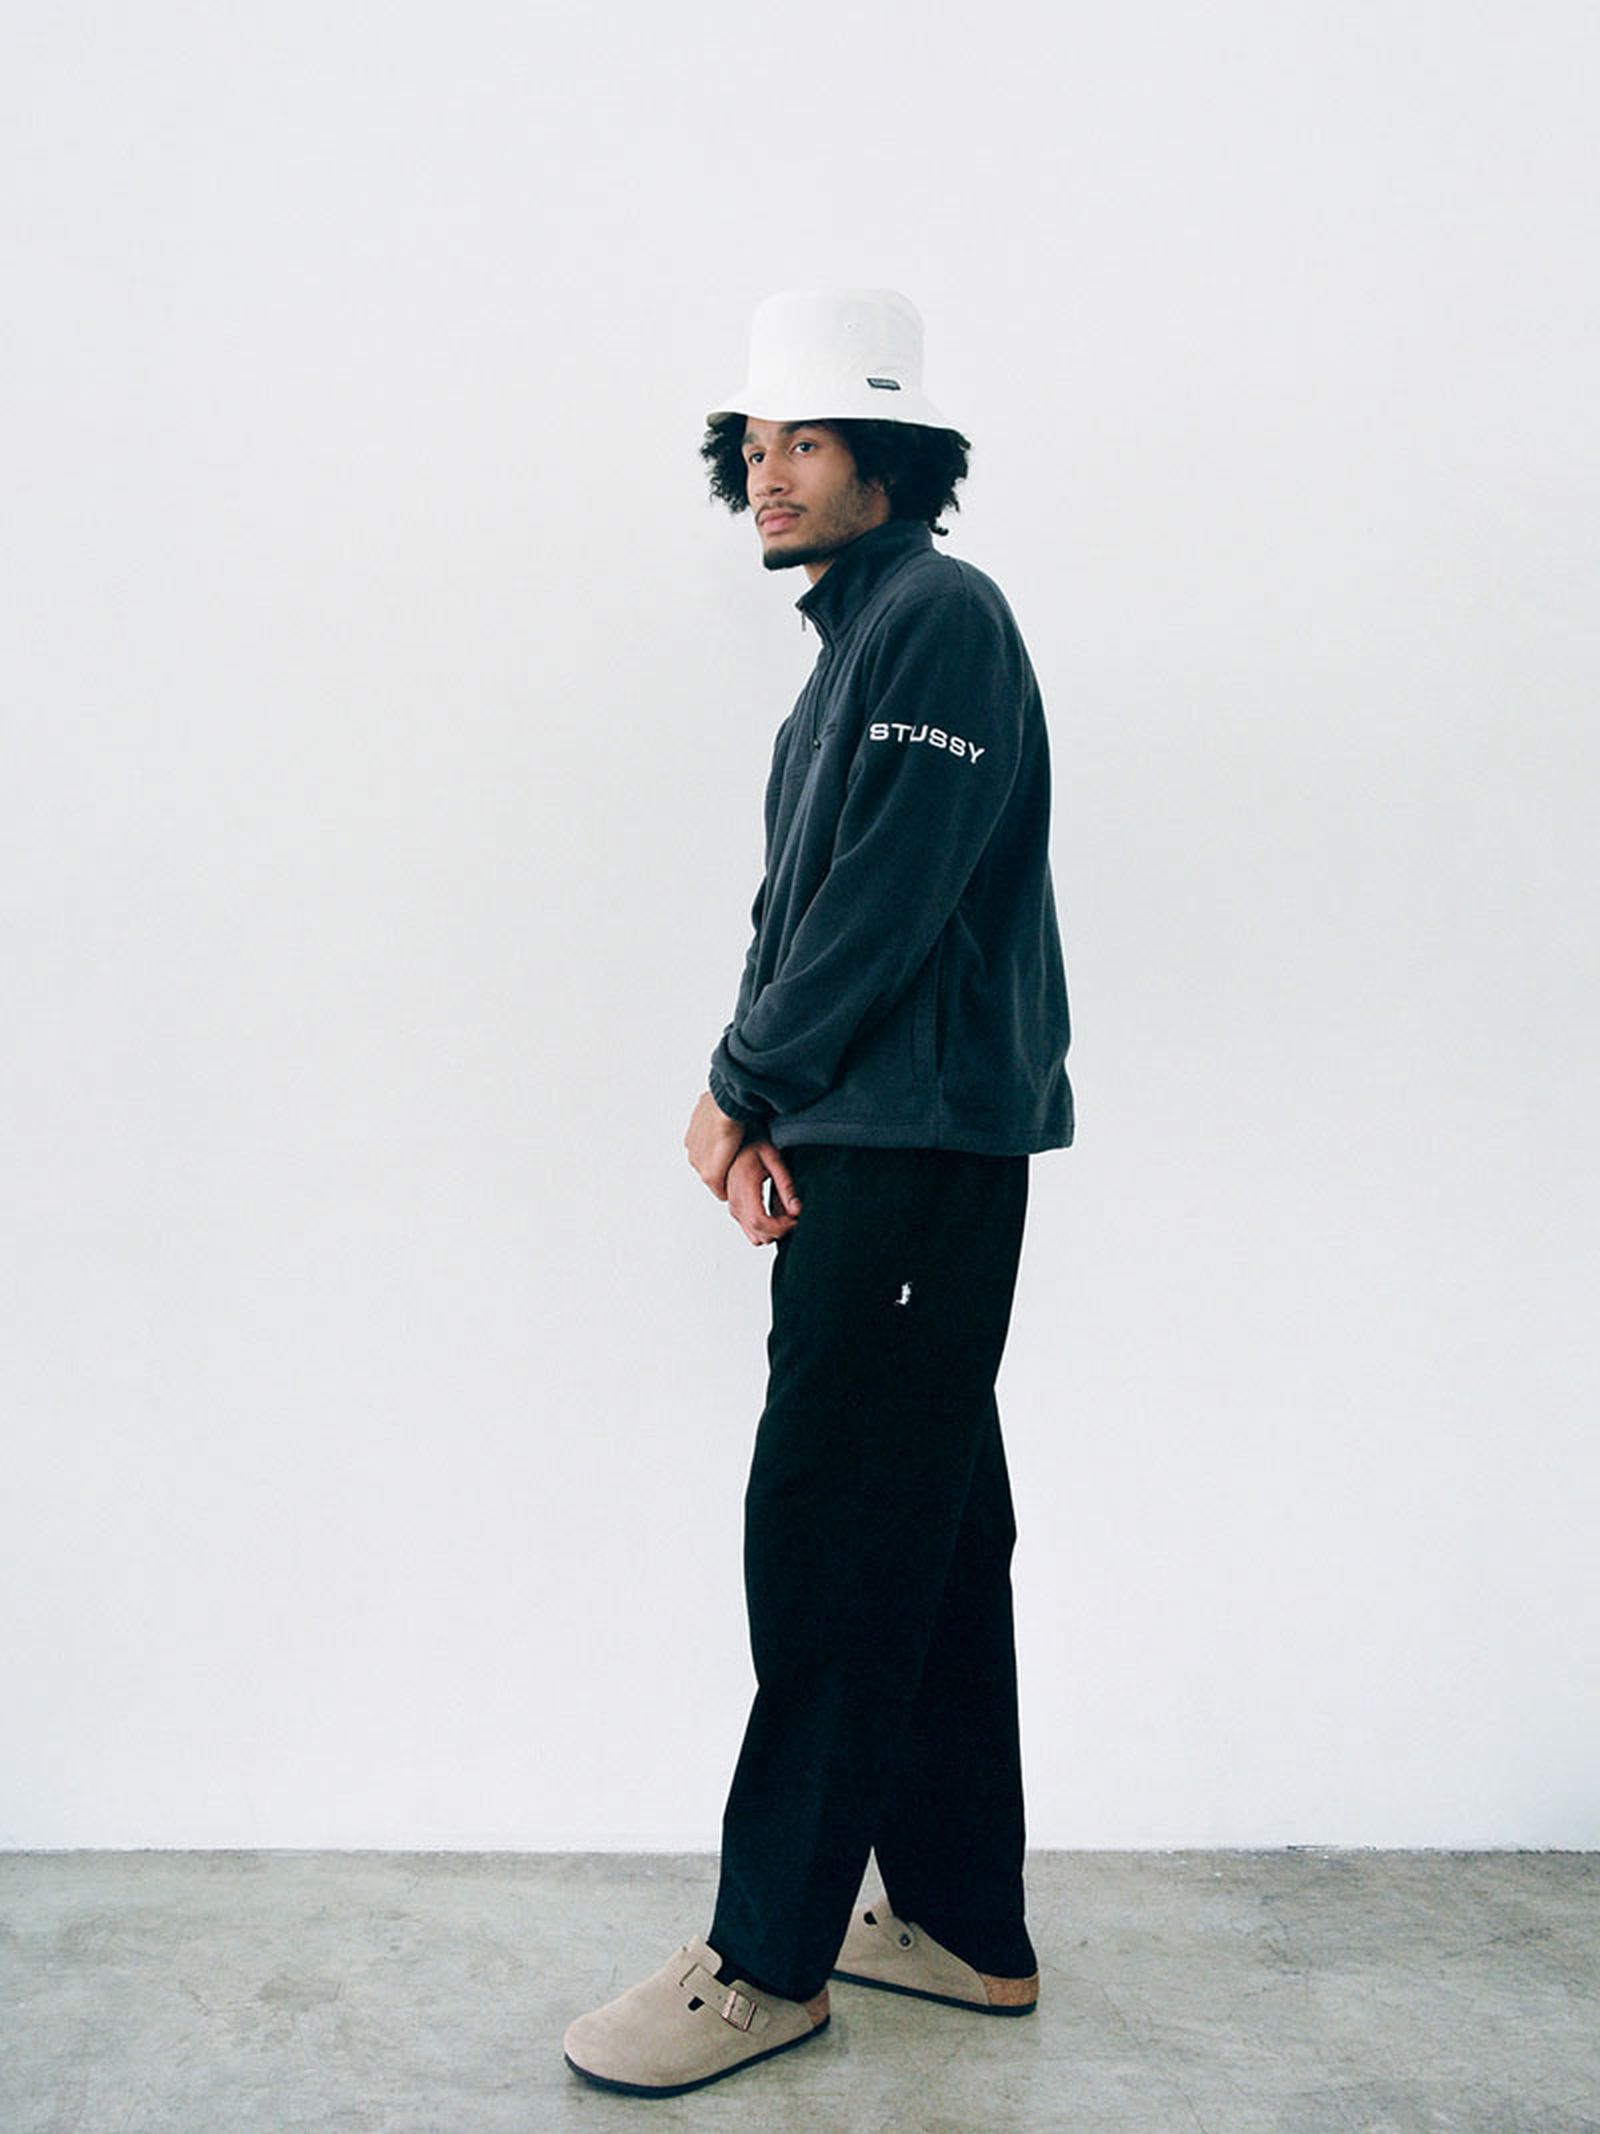 Stussy SP20 Lookbook - D1 Mens - 6